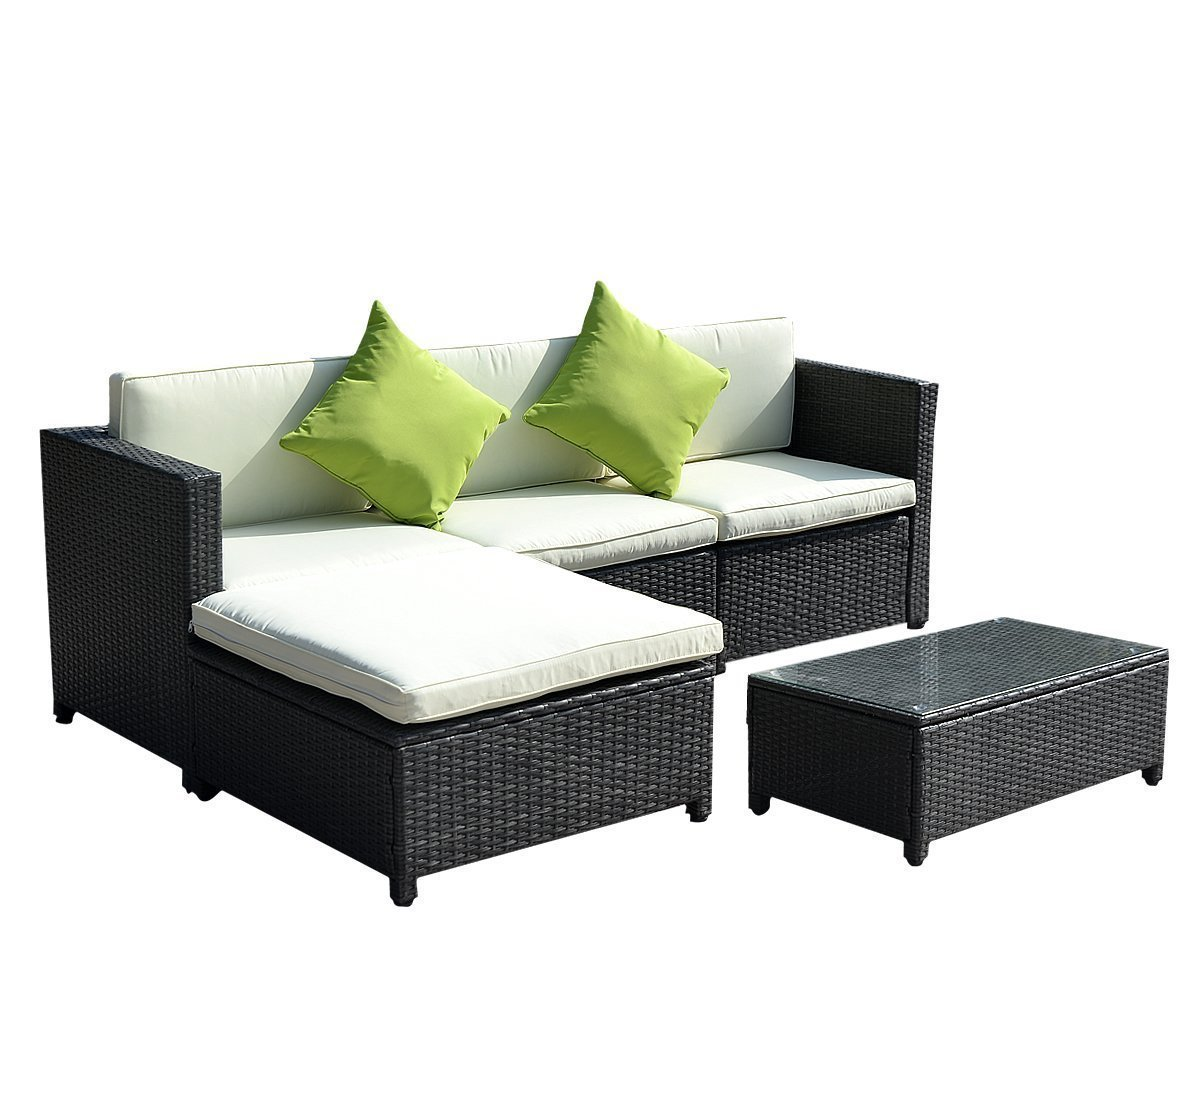 Elegant Amazon.com: Goplus® Outdoor Patio 5PC Furniture Sectional PE Wicker Rattan  Sofa Set Deck Couch Black: Garden U0026 Outdoor